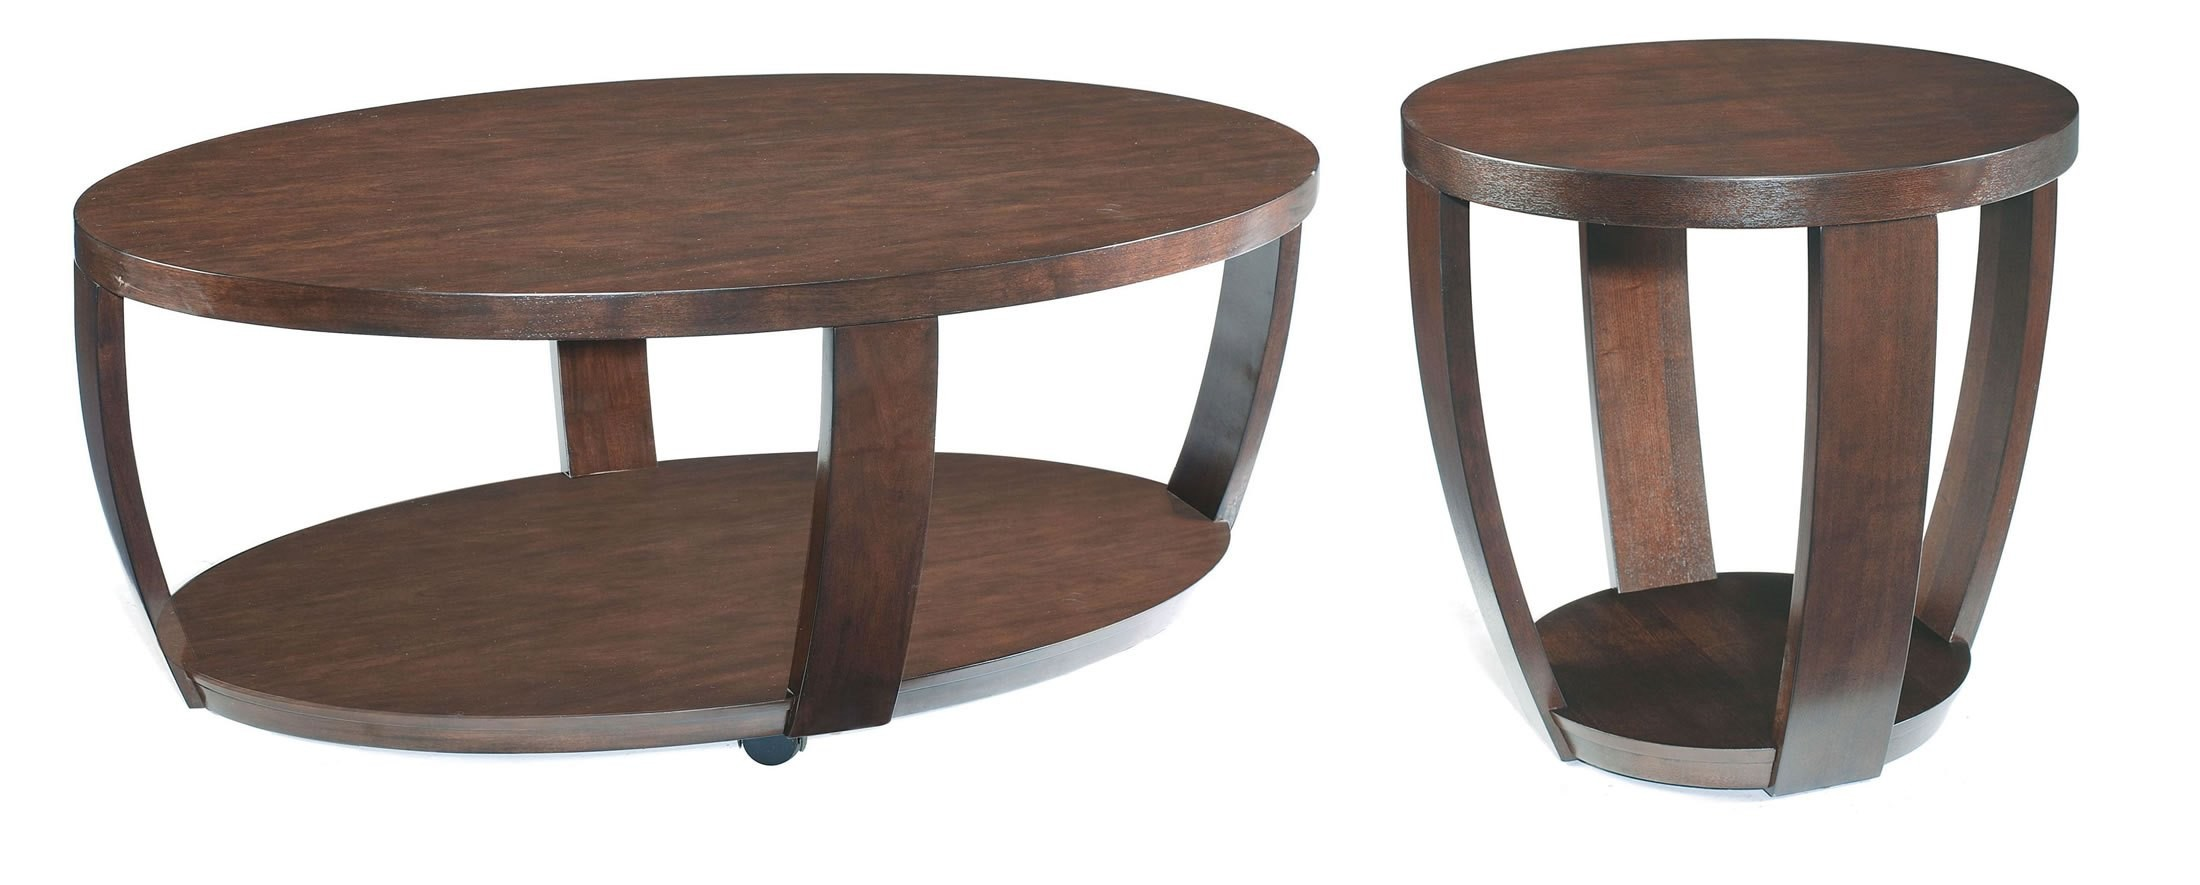 Sotto oval cocktail table from magnussen home t1579 47 for Cocktail table 47